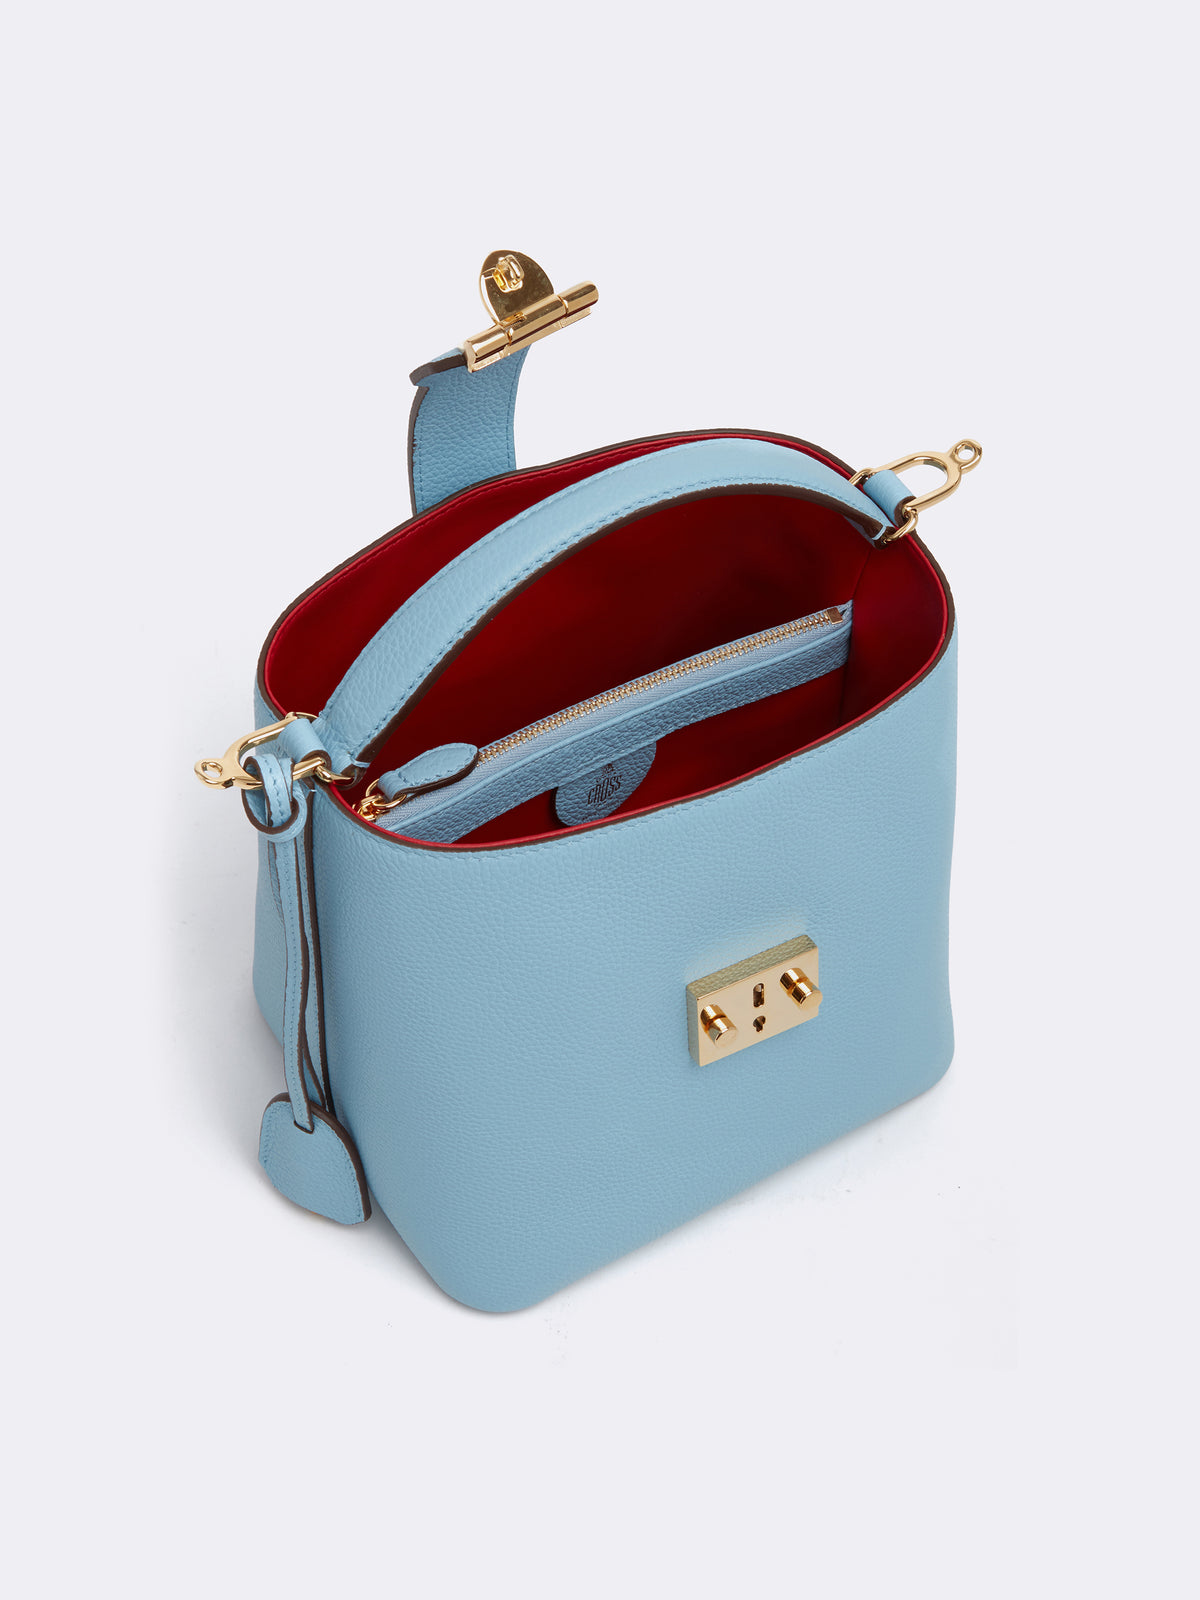 Mark Cross Murphy Small Leather Bucket Bag Tumbled Grain Powder Blue Interior